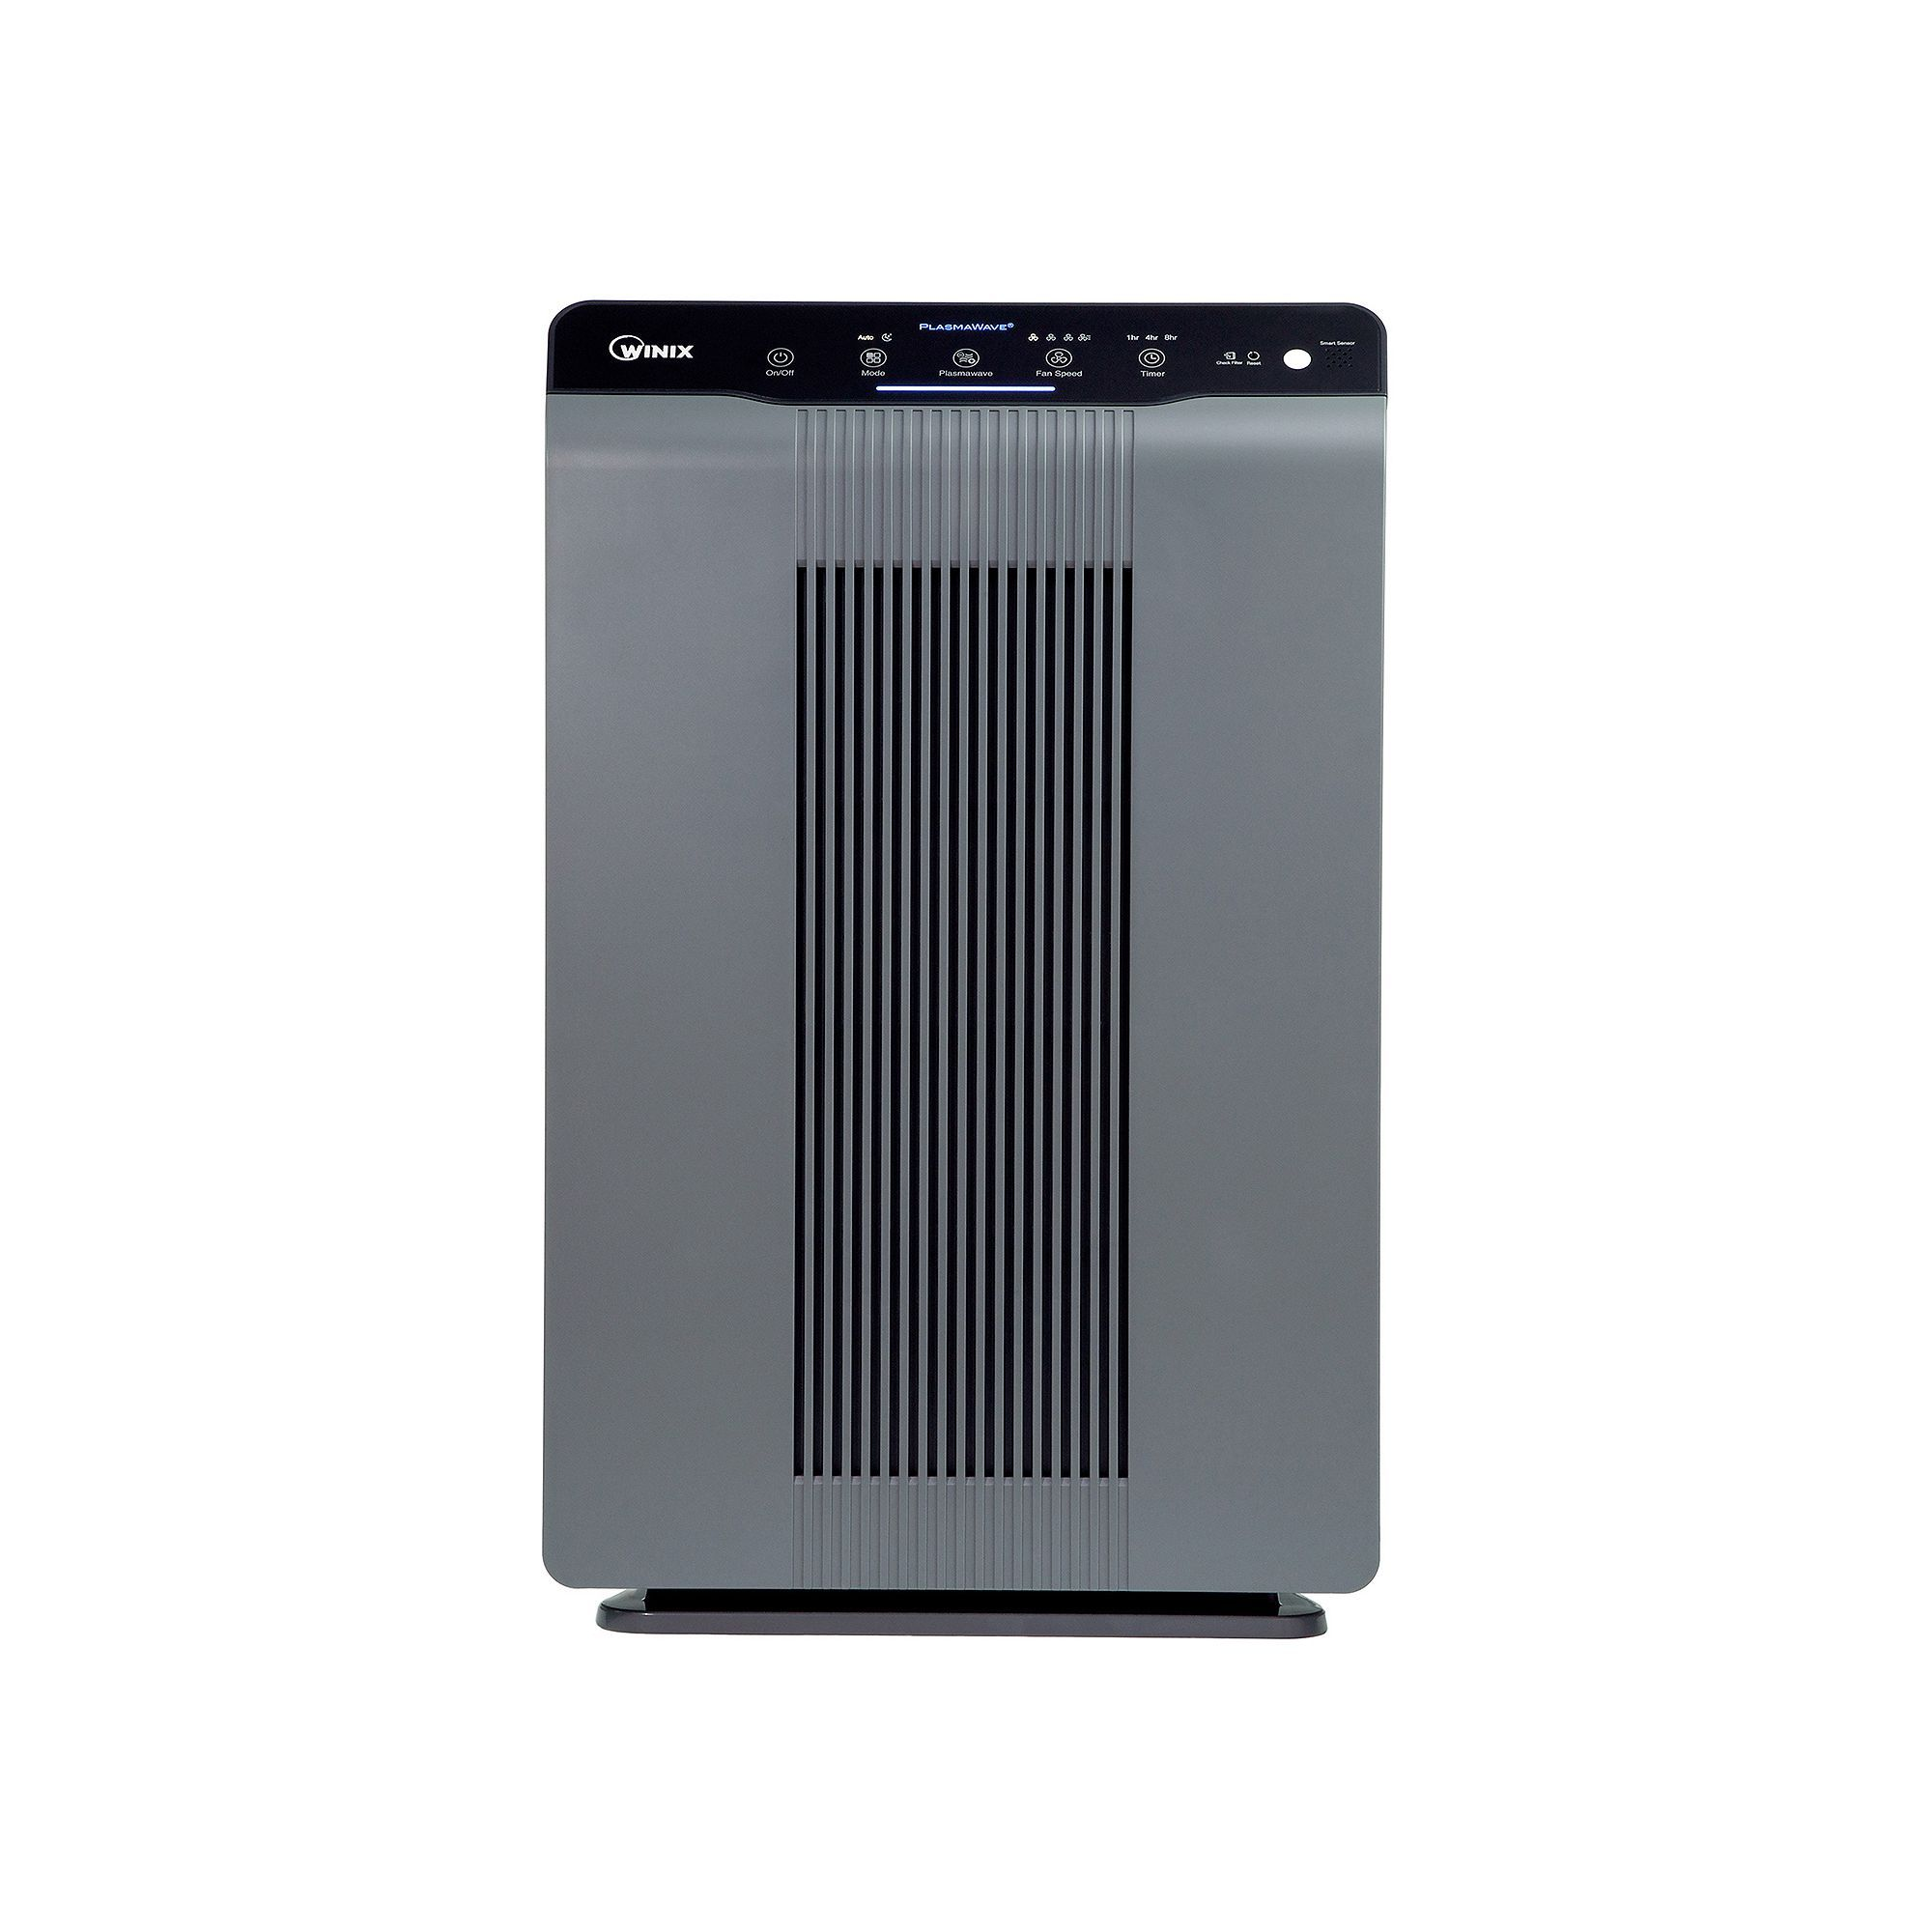 Winix 53002 PlasmaWave Air Cleaner, Grey Hepa air